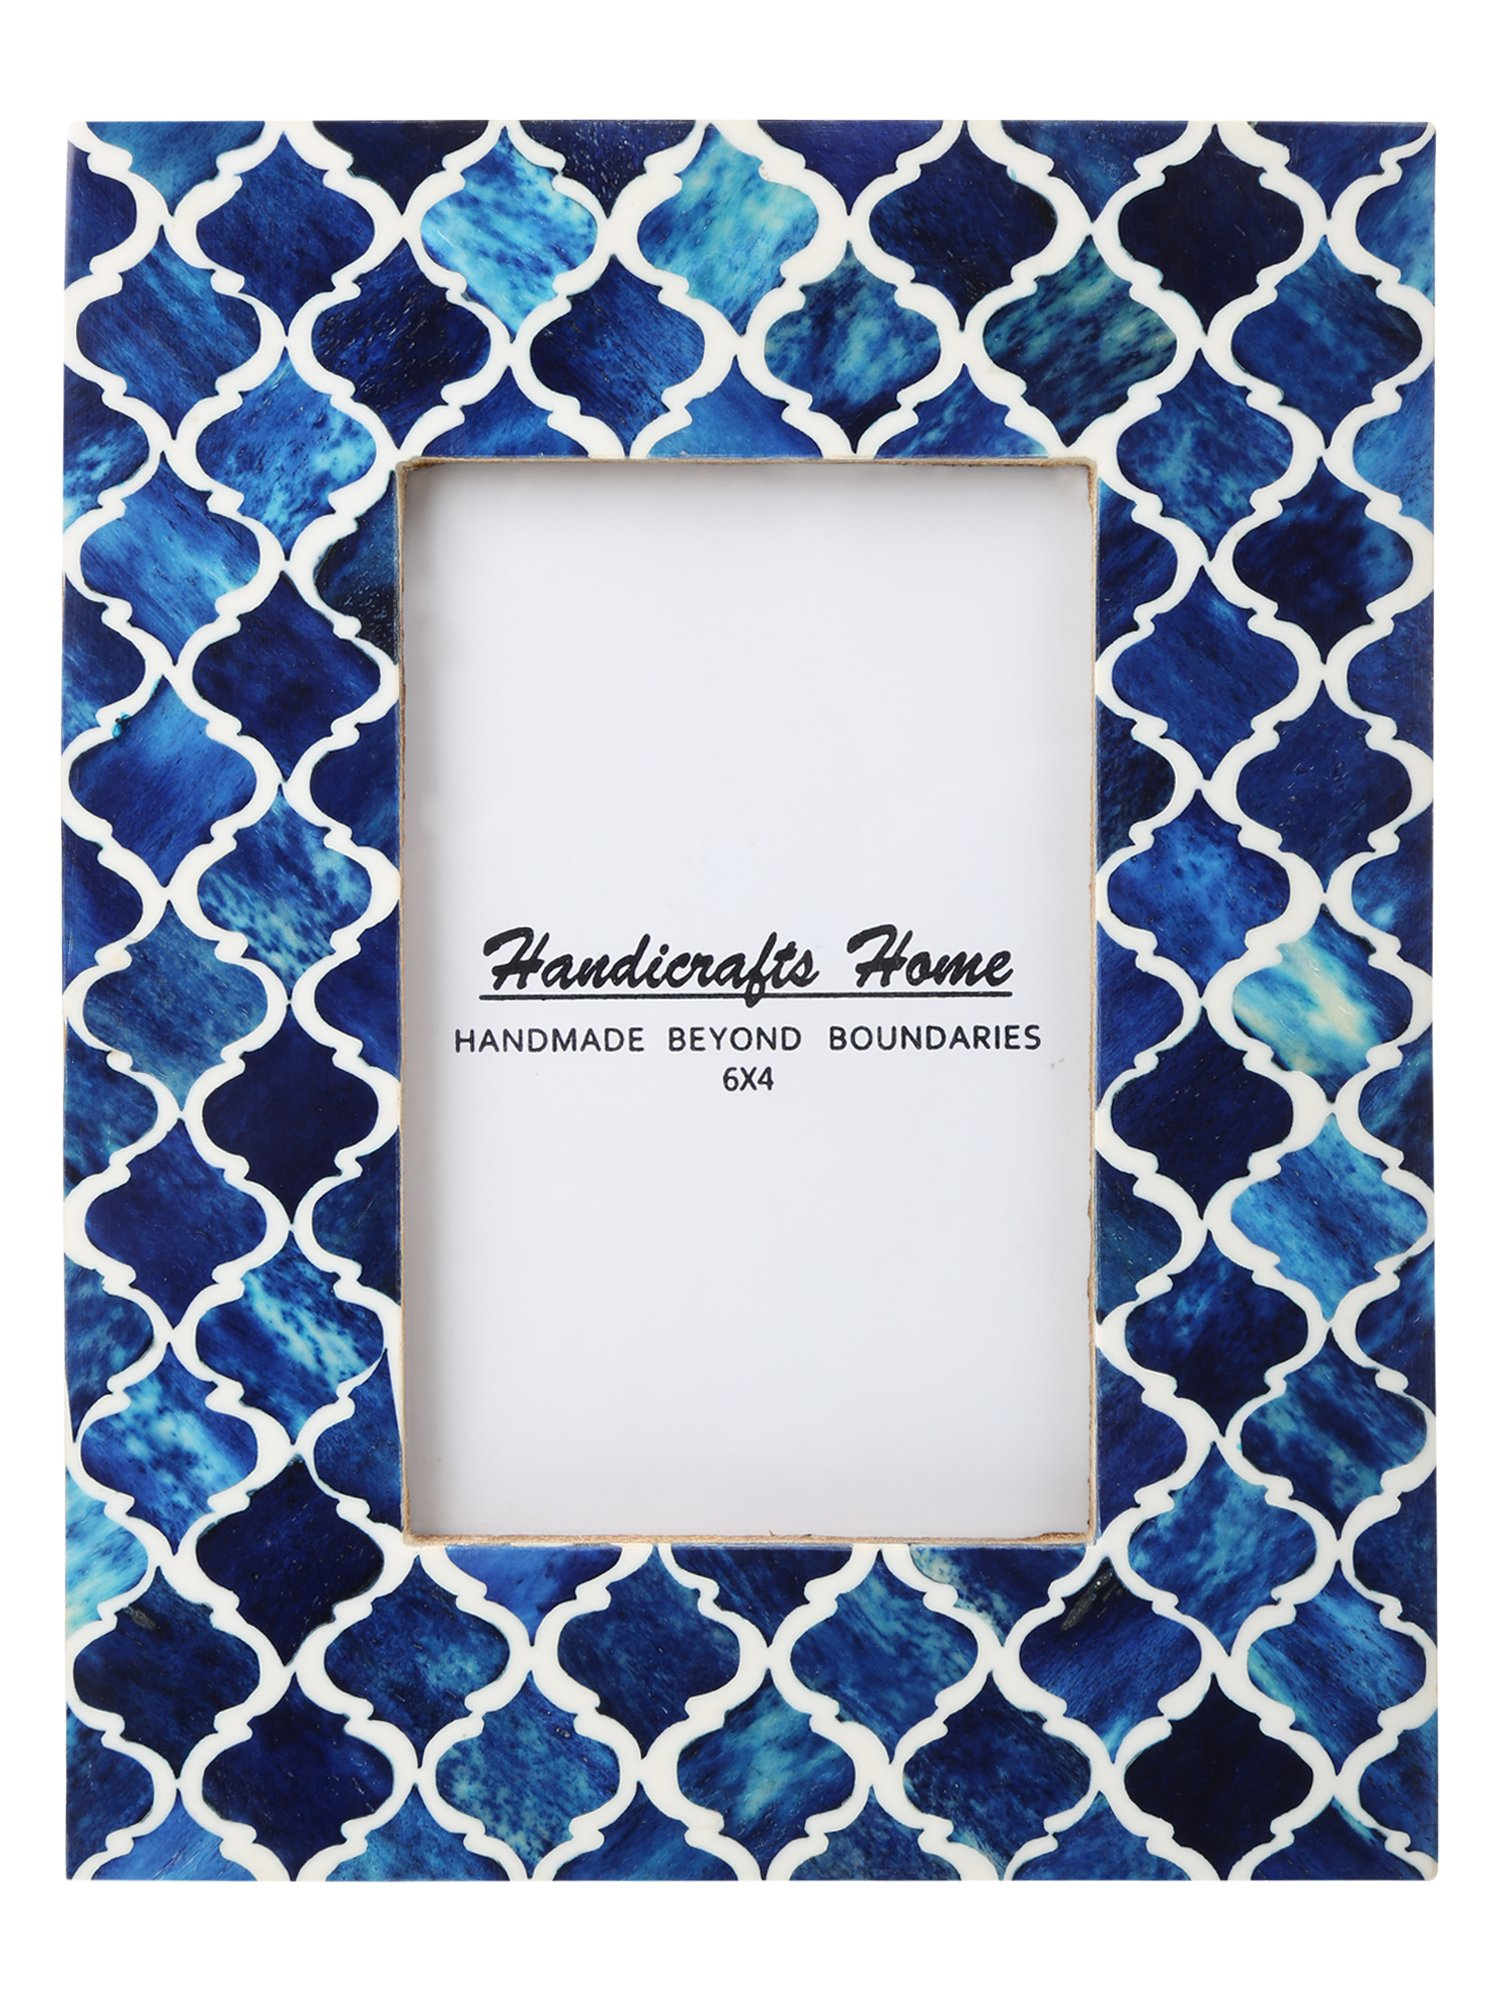 Picture Frame Photo Frame Moorish Damask Moroccan Arts Inspired Handmade Naturals Bone Frames Size 4x6 & 5x7 inches (4X6, Blue)